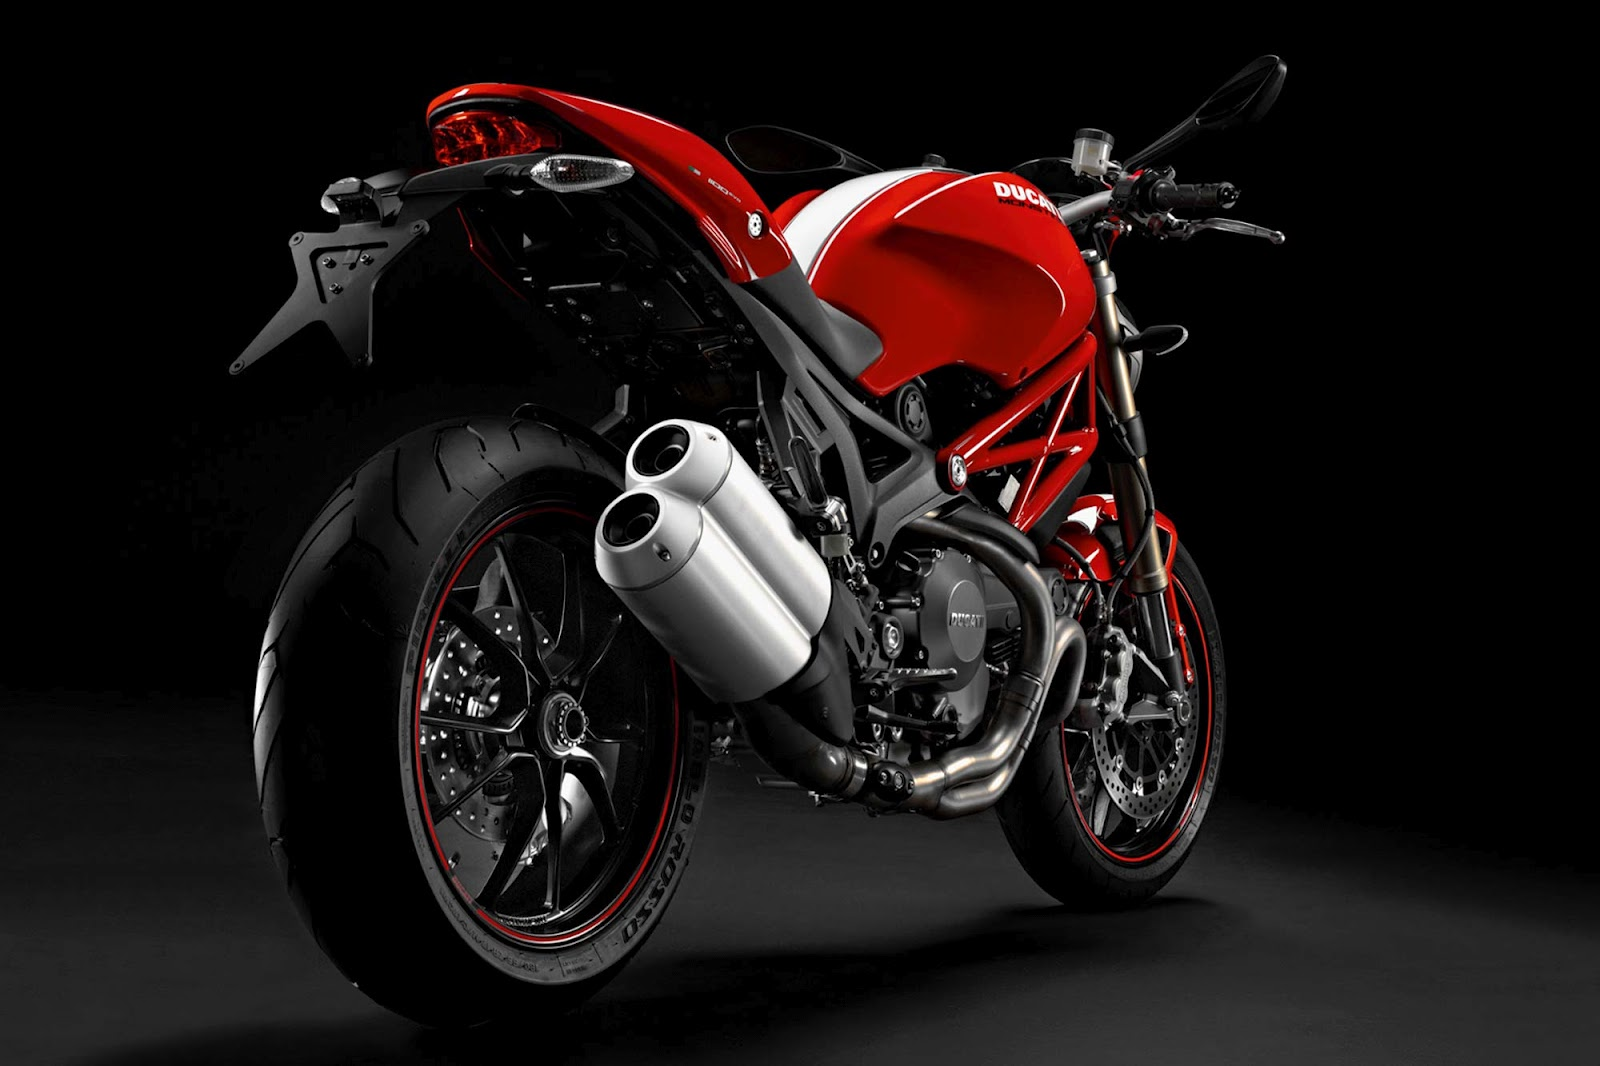 2012 ducati monster 1100 evo review motorcycle news. Black Bedroom Furniture Sets. Home Design Ideas